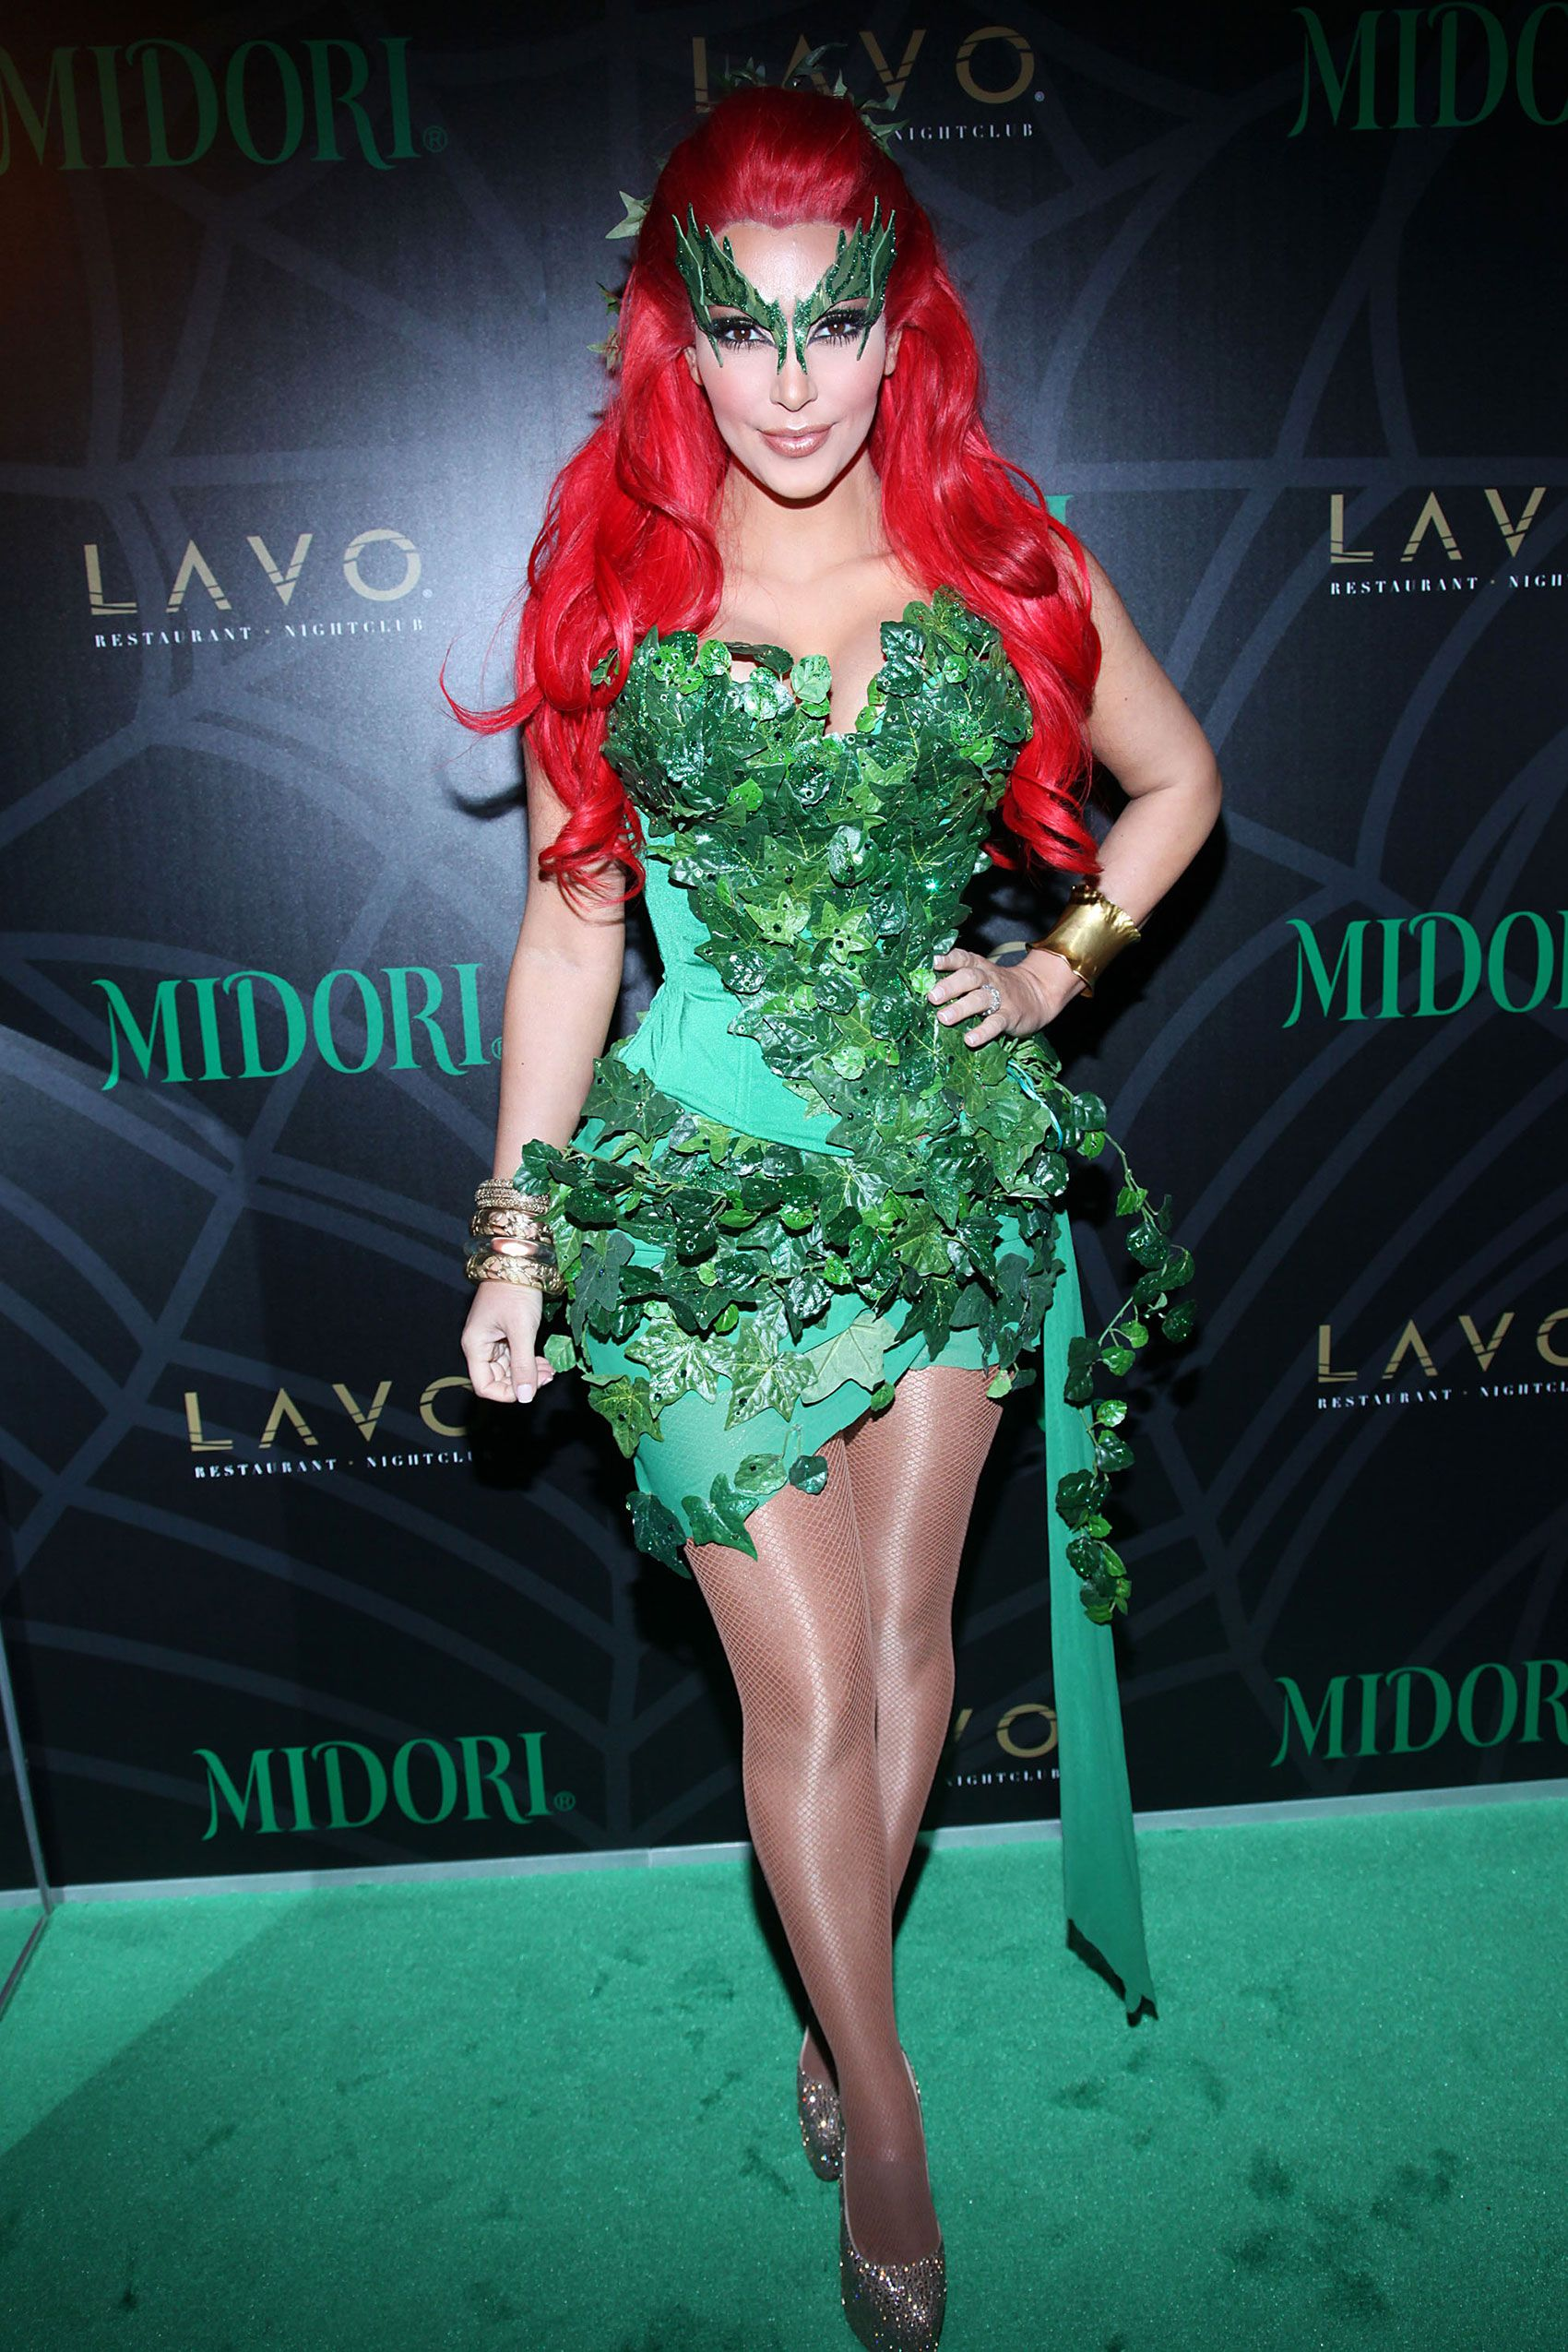 The 25 Best Celebrity Halloween Costumes of All Time ...